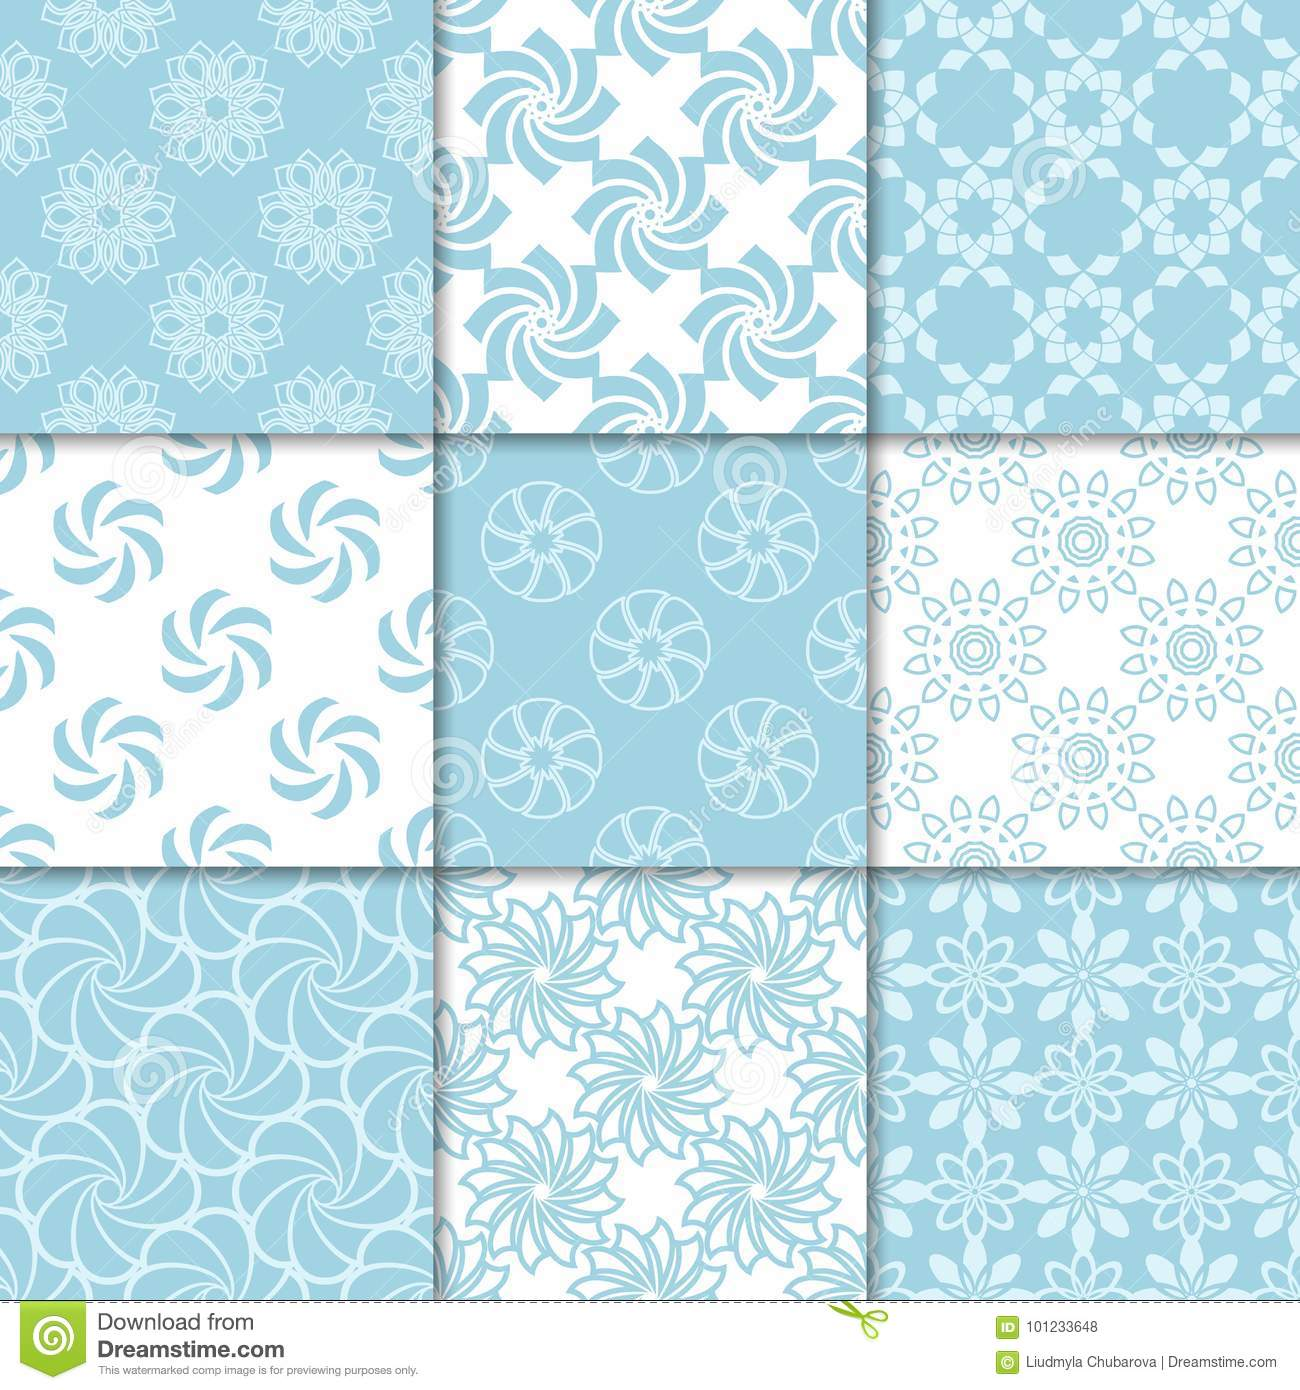 Floral Seamless Patterns Set Of Blue Wallpaper Backgrounds Stock